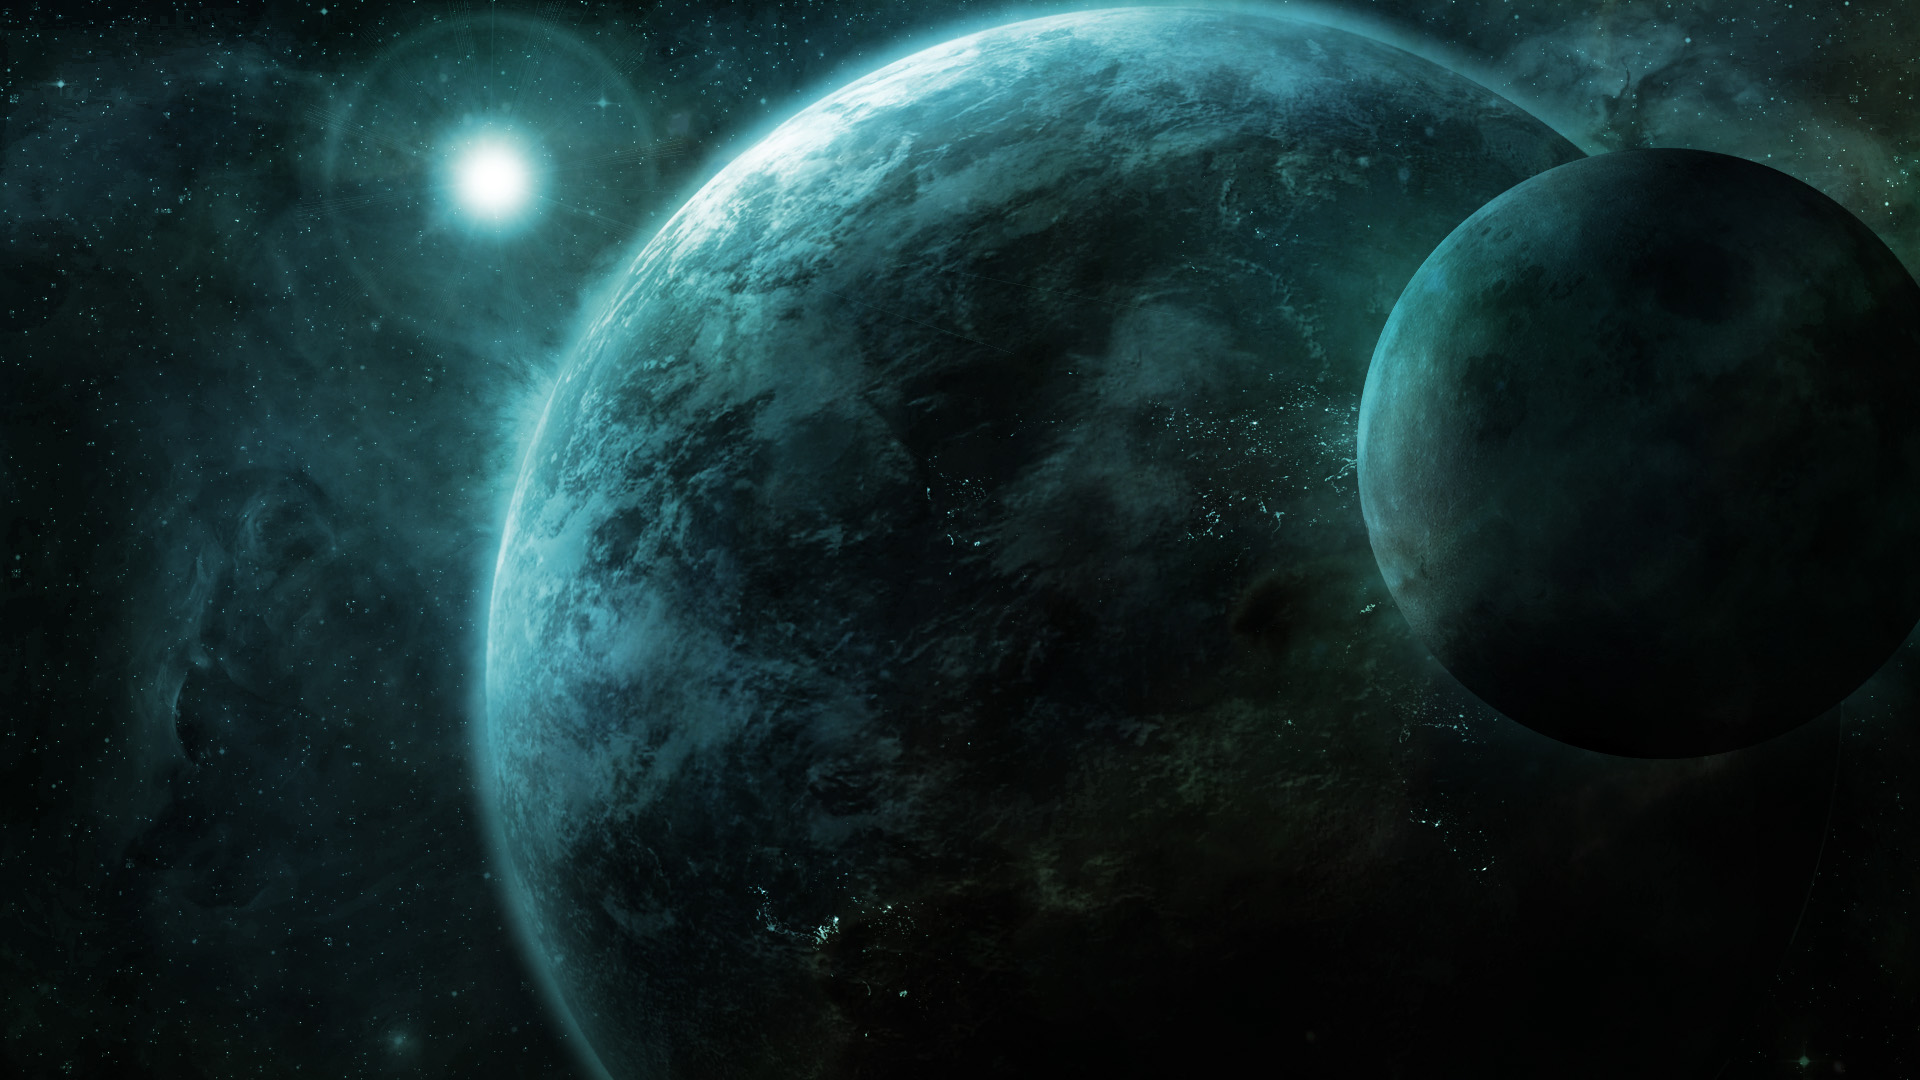 3d Futuristic Wallpapers Space Planet Moon Digital Art Wallpapers Hd Desktop